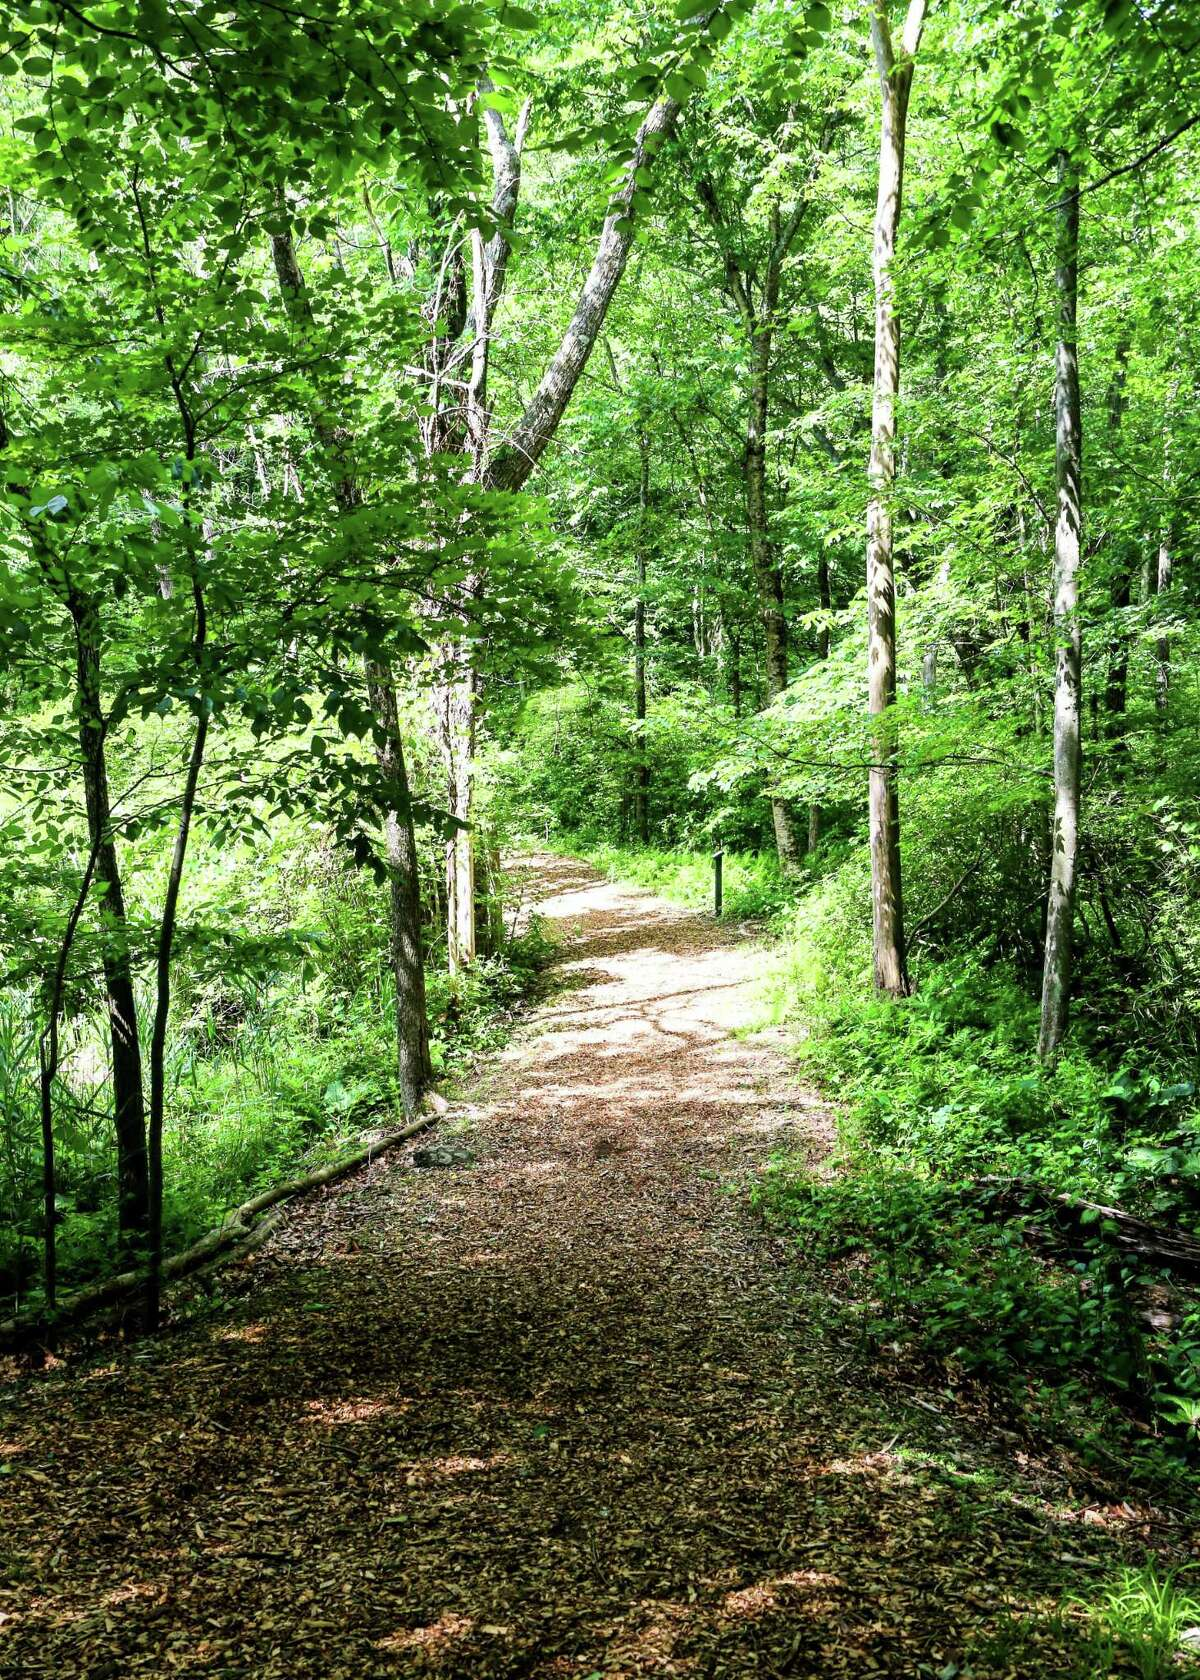 Woodcock Nature Center is offering a Frothy Forage - hiking with beer tastings - on Oct. 19.